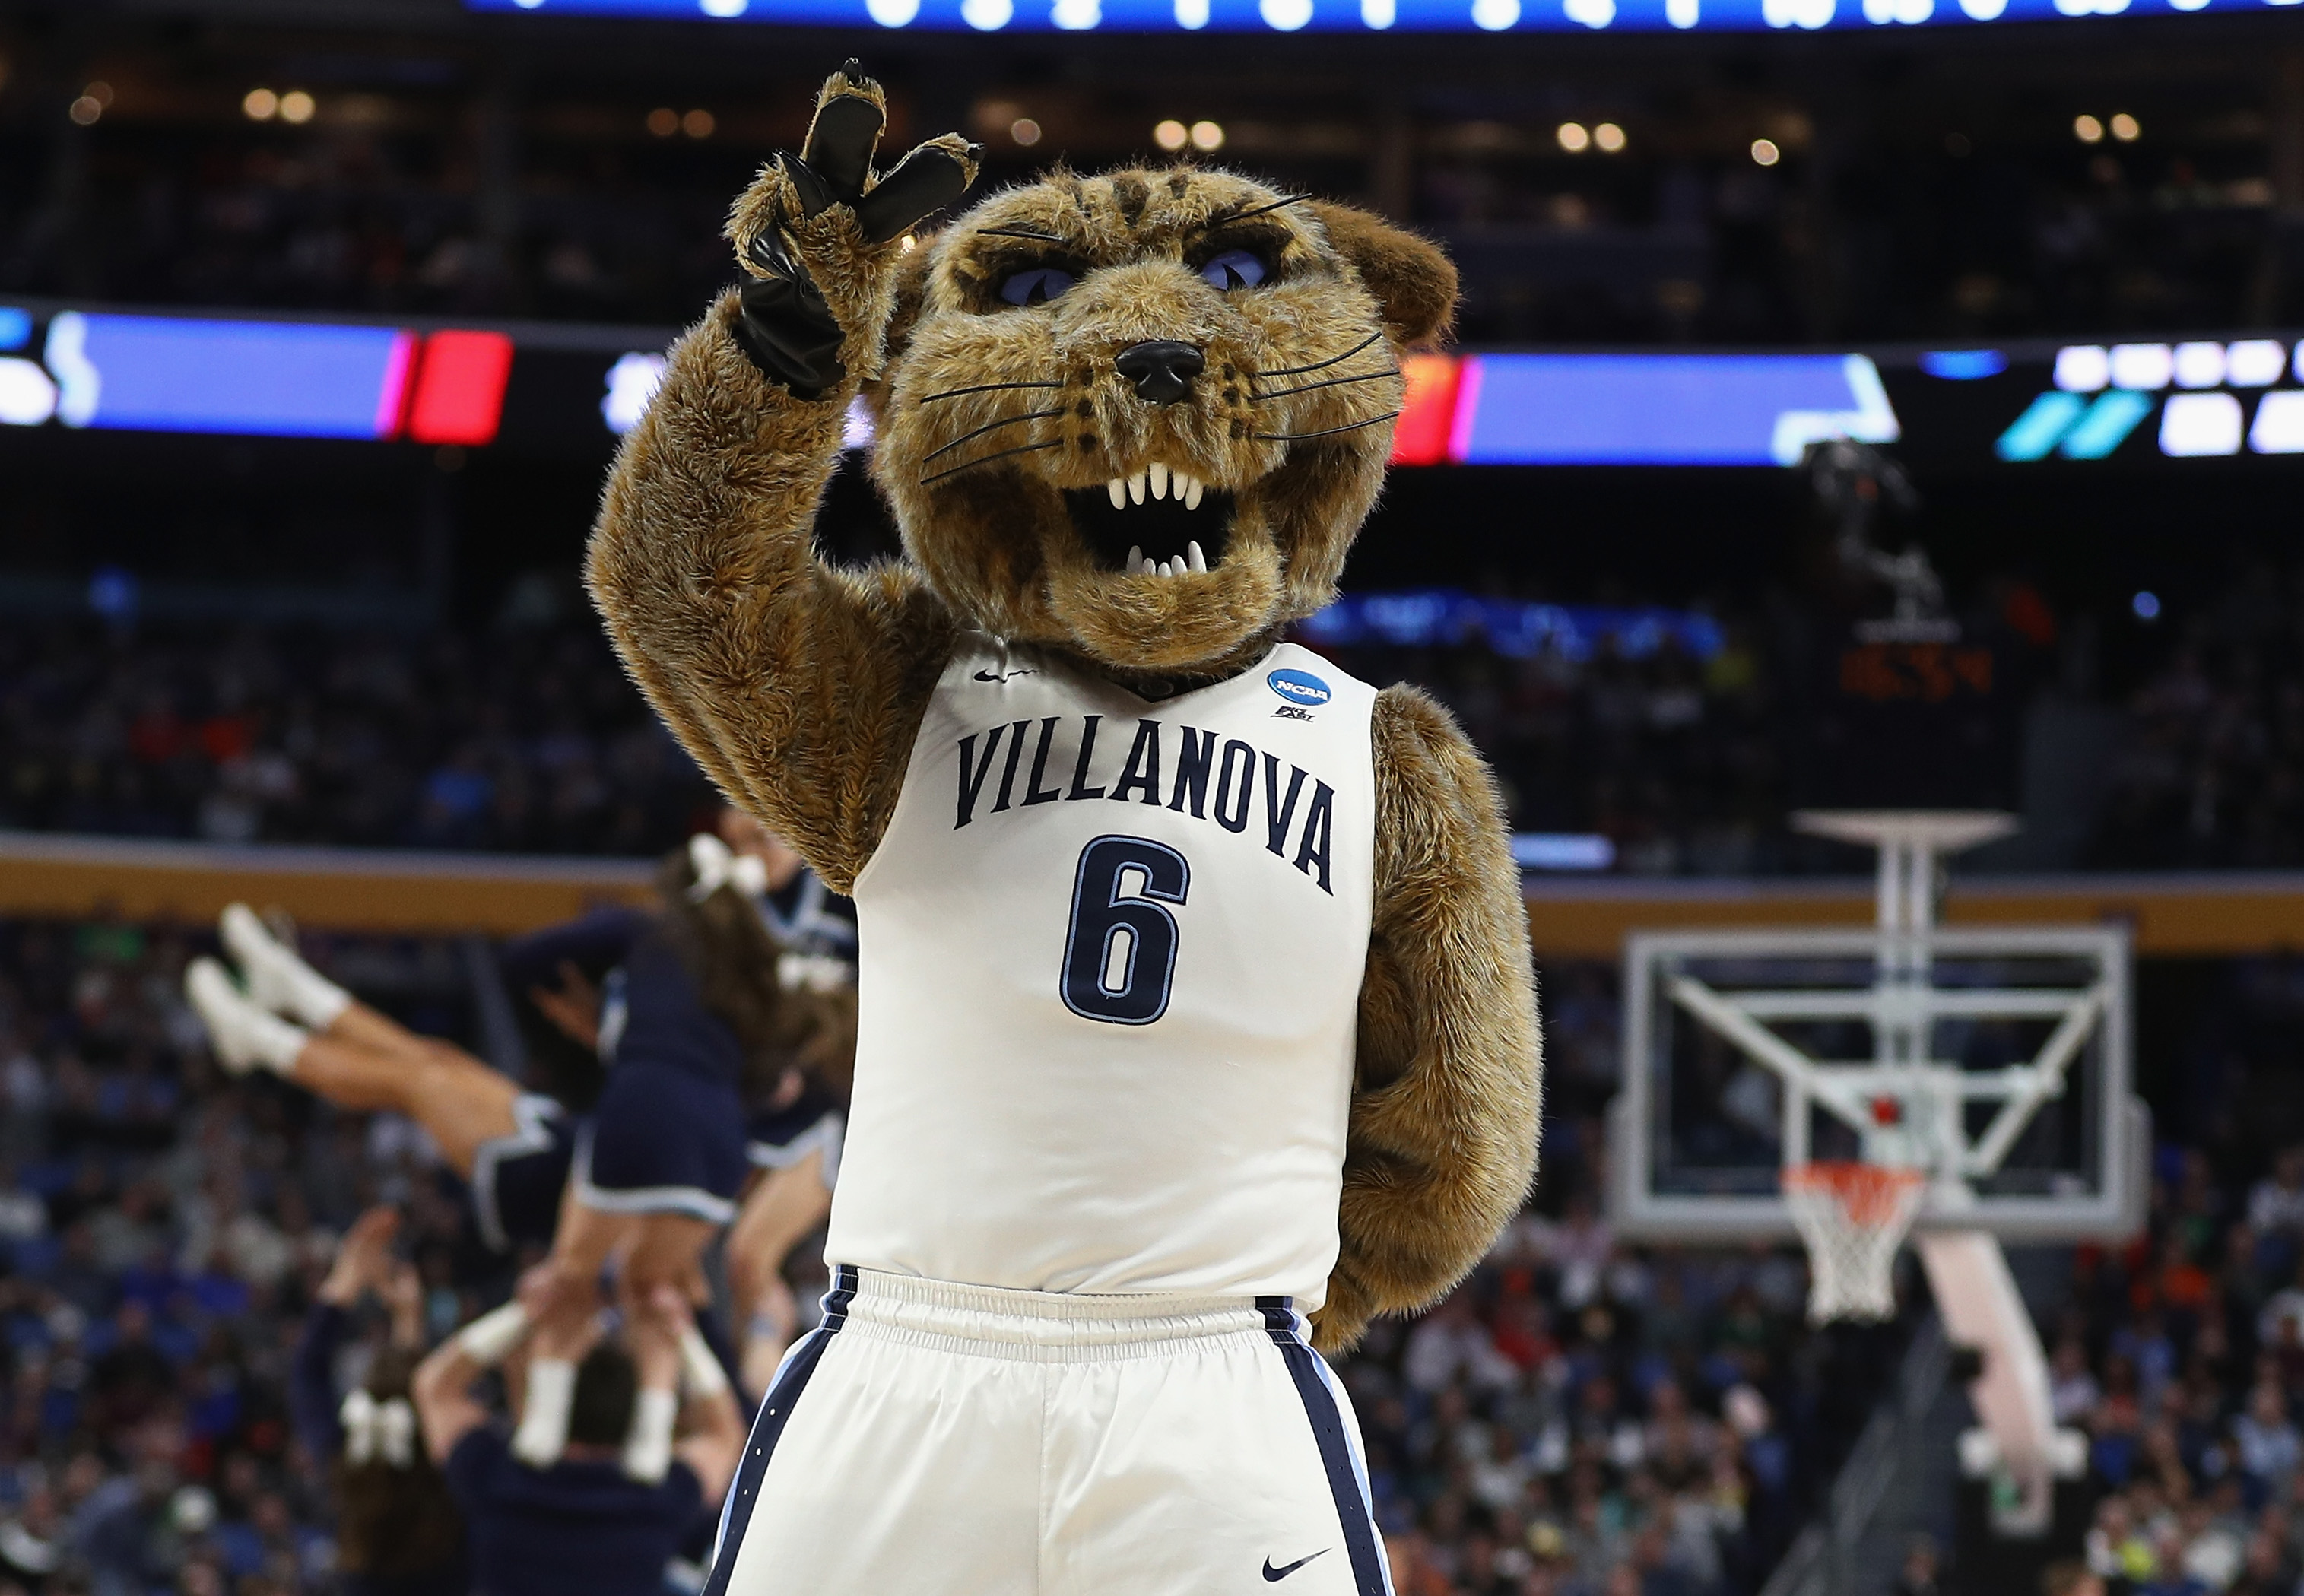 Villanova mascot, Will D Cat